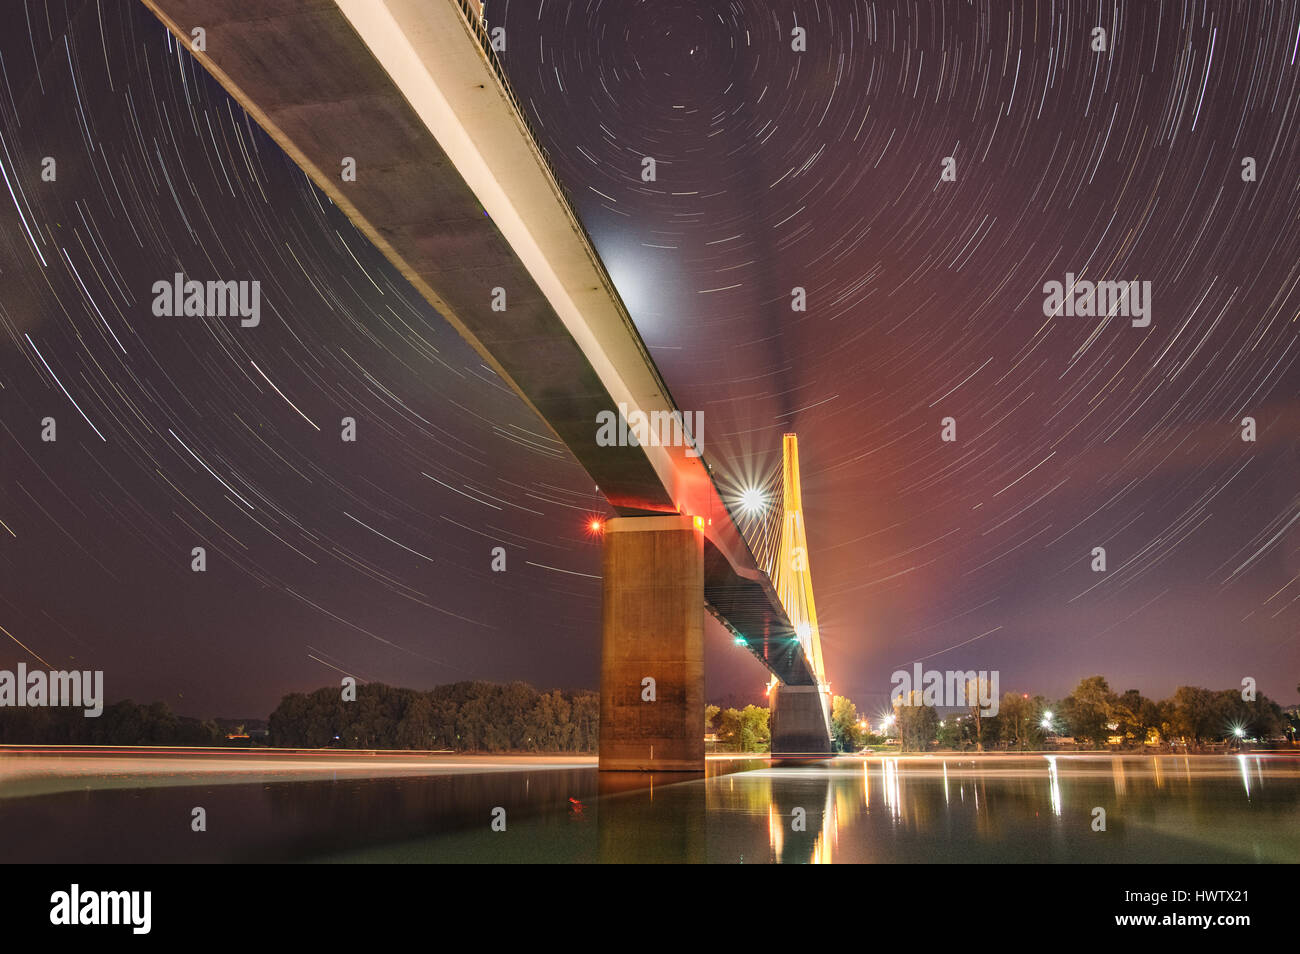 The rotation of the Earth produce star trails over long exposures at night above the large cable-stay bridge shrouded - Stock Image